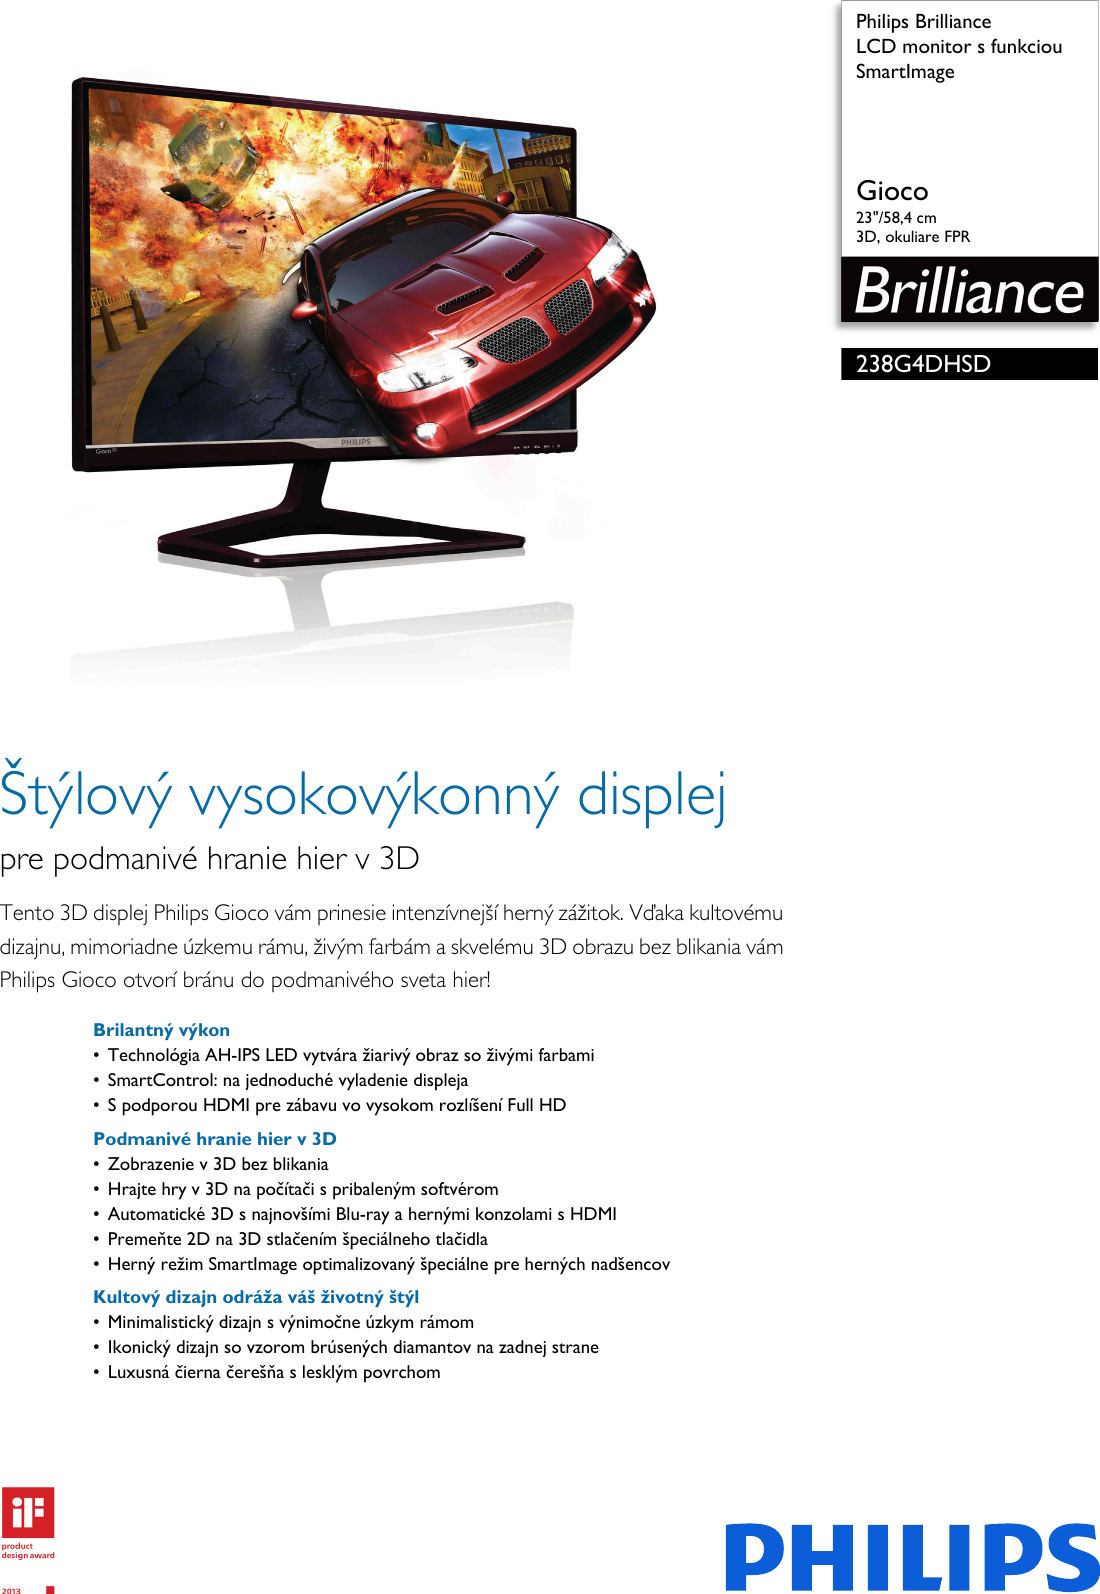 2e184b6fc Philips 238G4DHSD/00 Leaflet 238G4DHSD_00 Released Slovakia (Slovak) User  Manual Prospekt 238g4dhsd 00 Pss Slksk